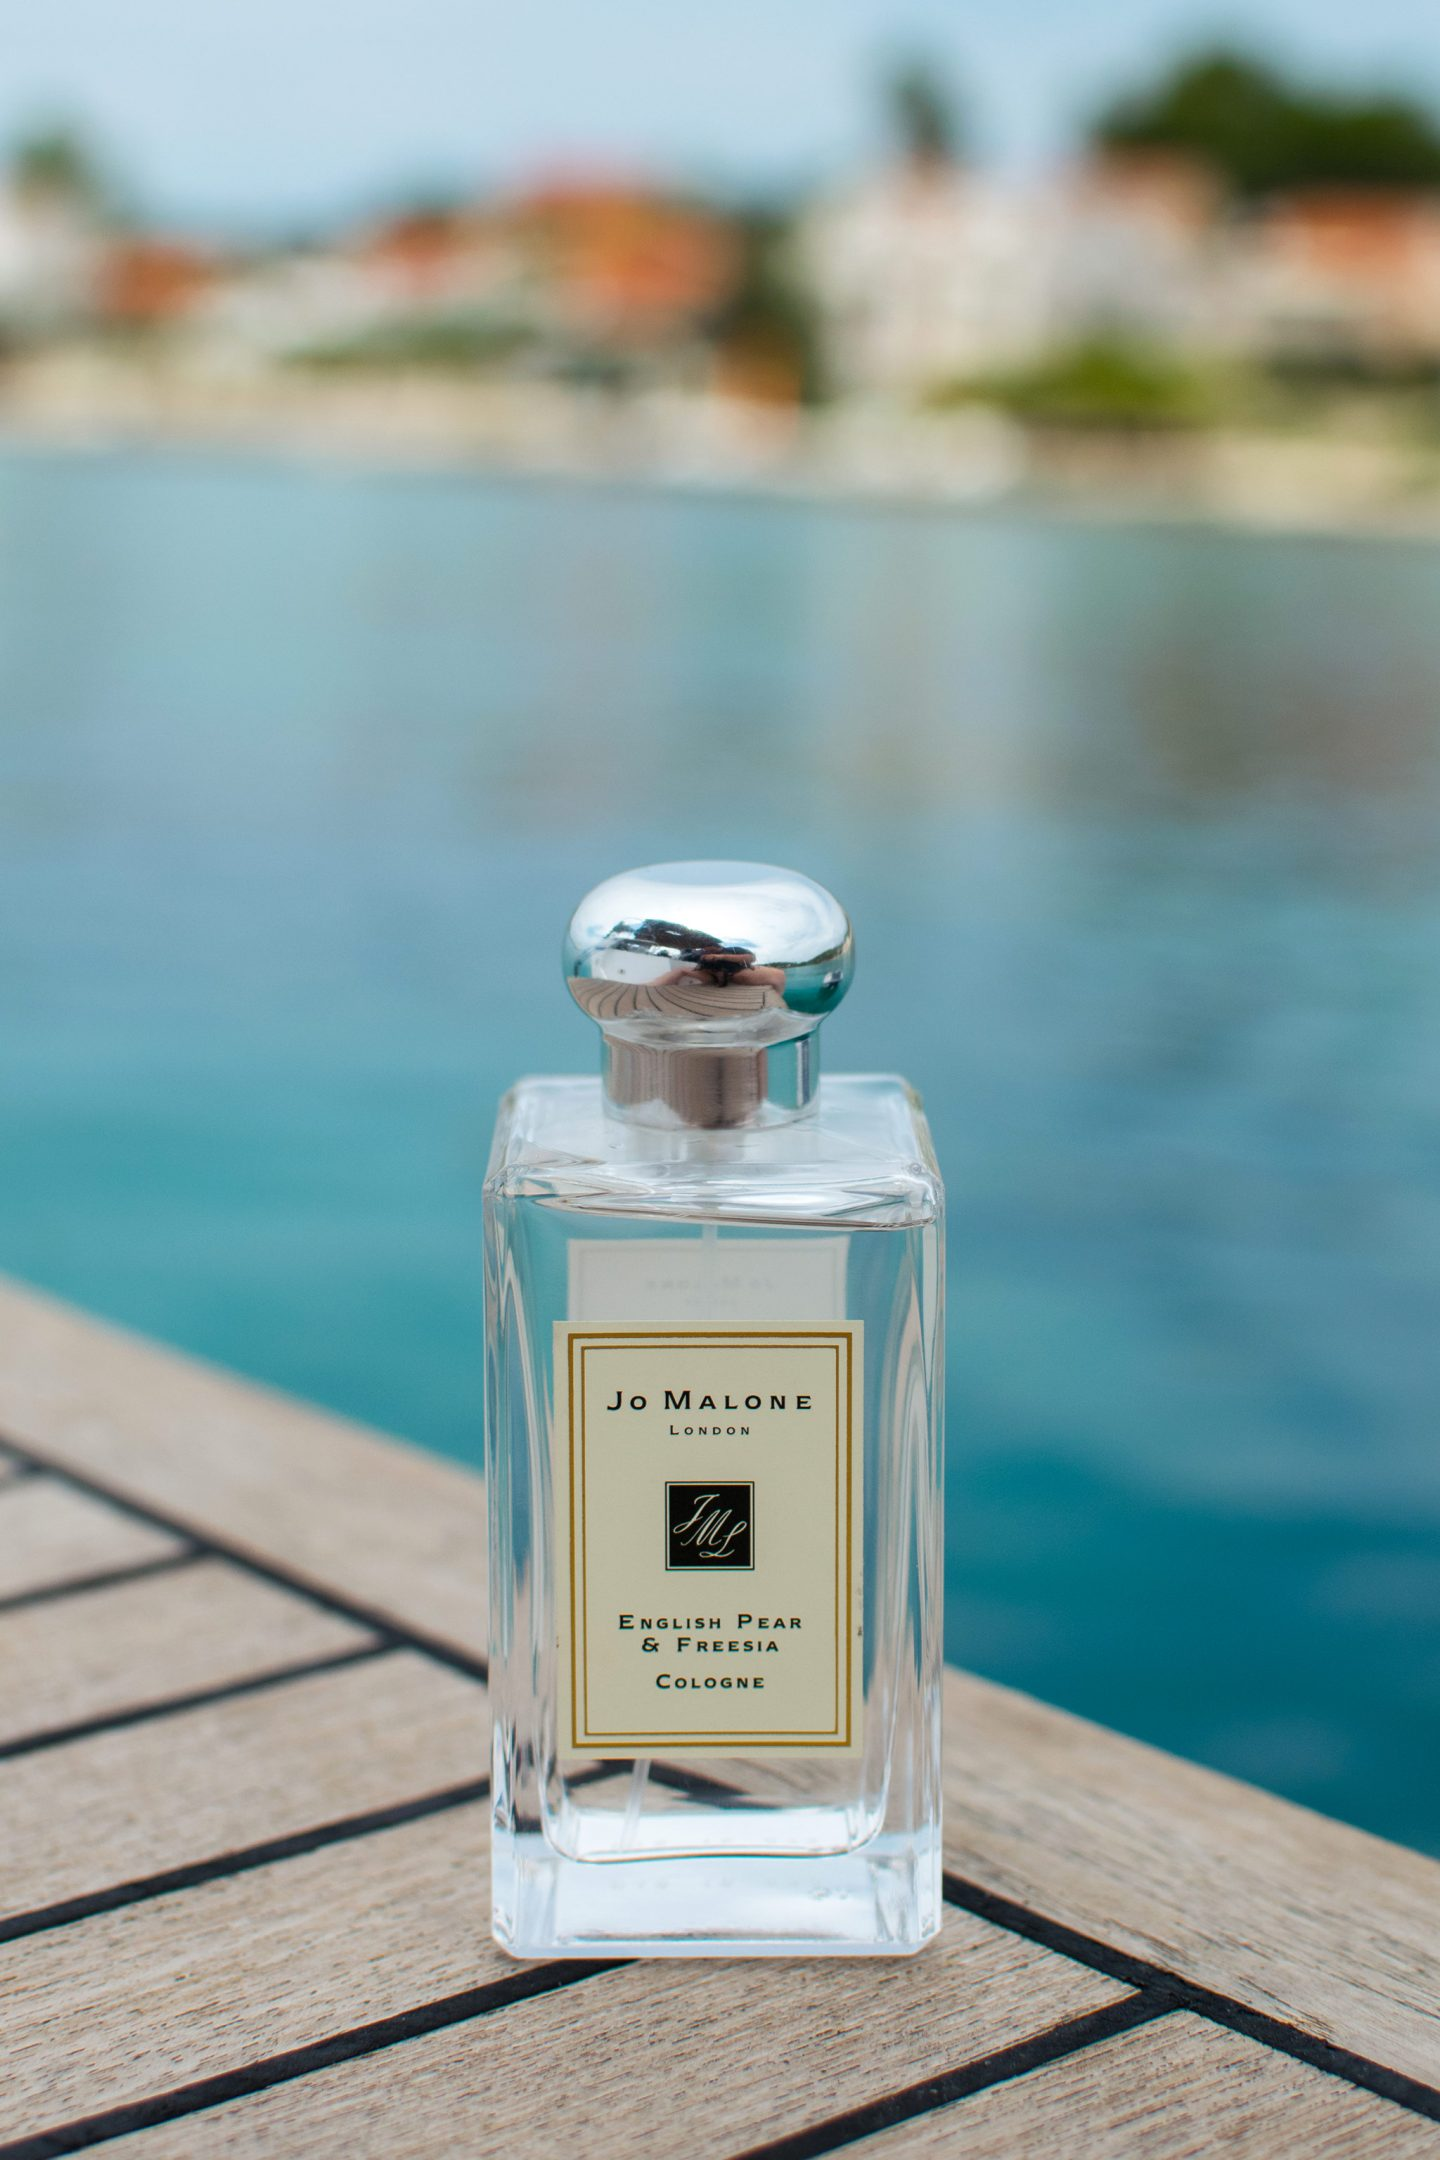 Jo Malone English Pear and Freesia parfum